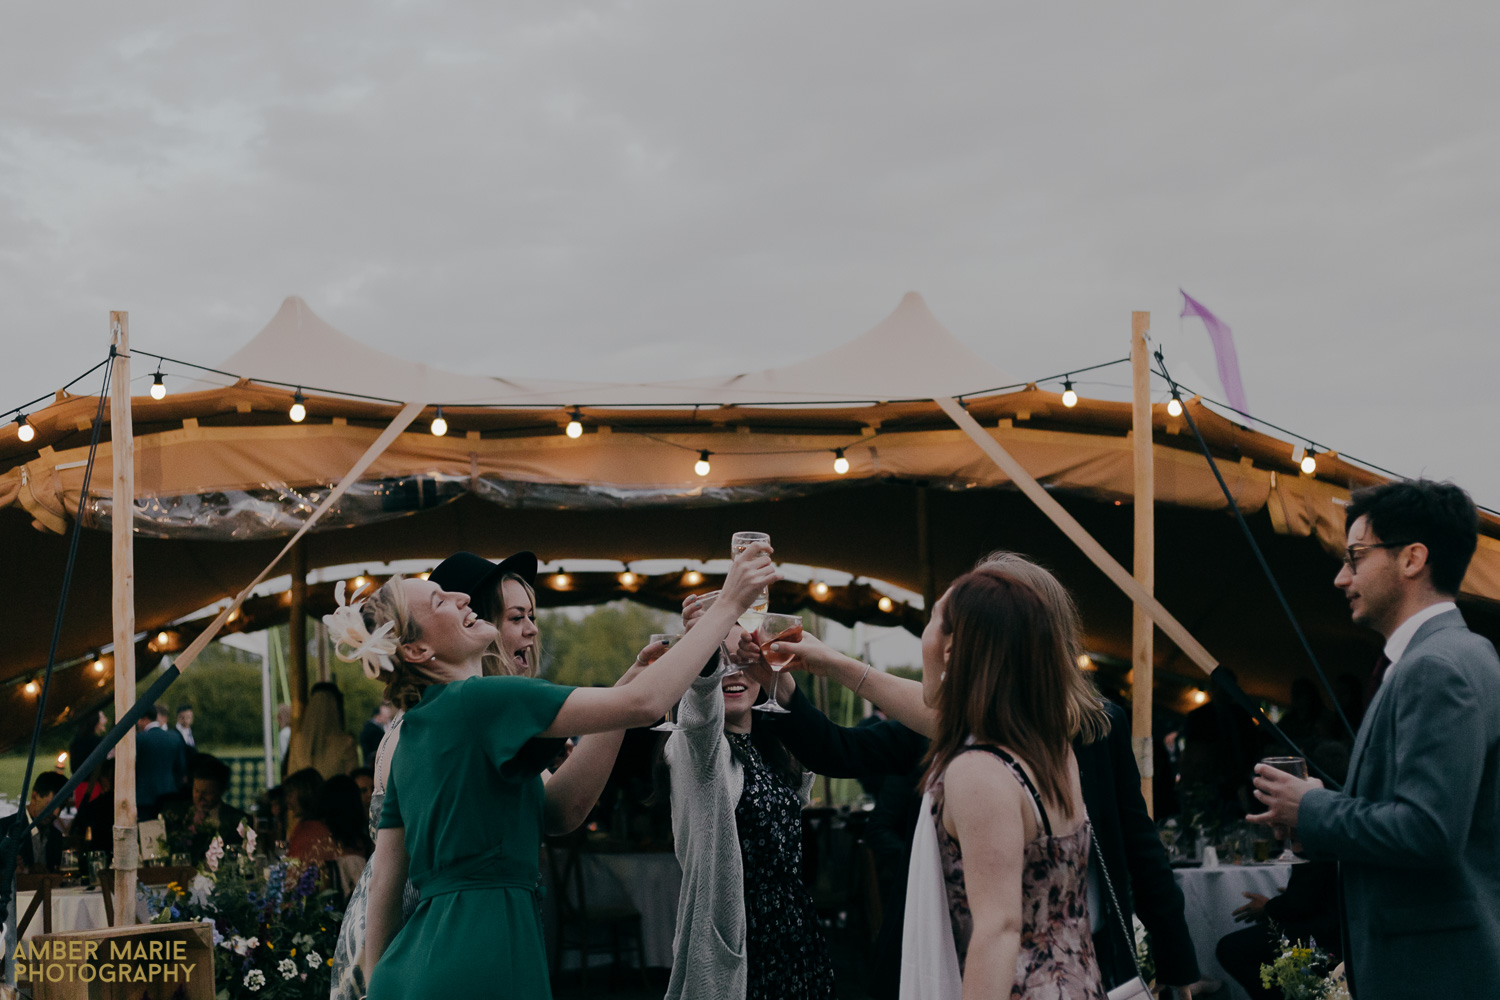 Joyful guests dancing at Bride and groom dancing in front of Tipi at Jenners Barn wedding